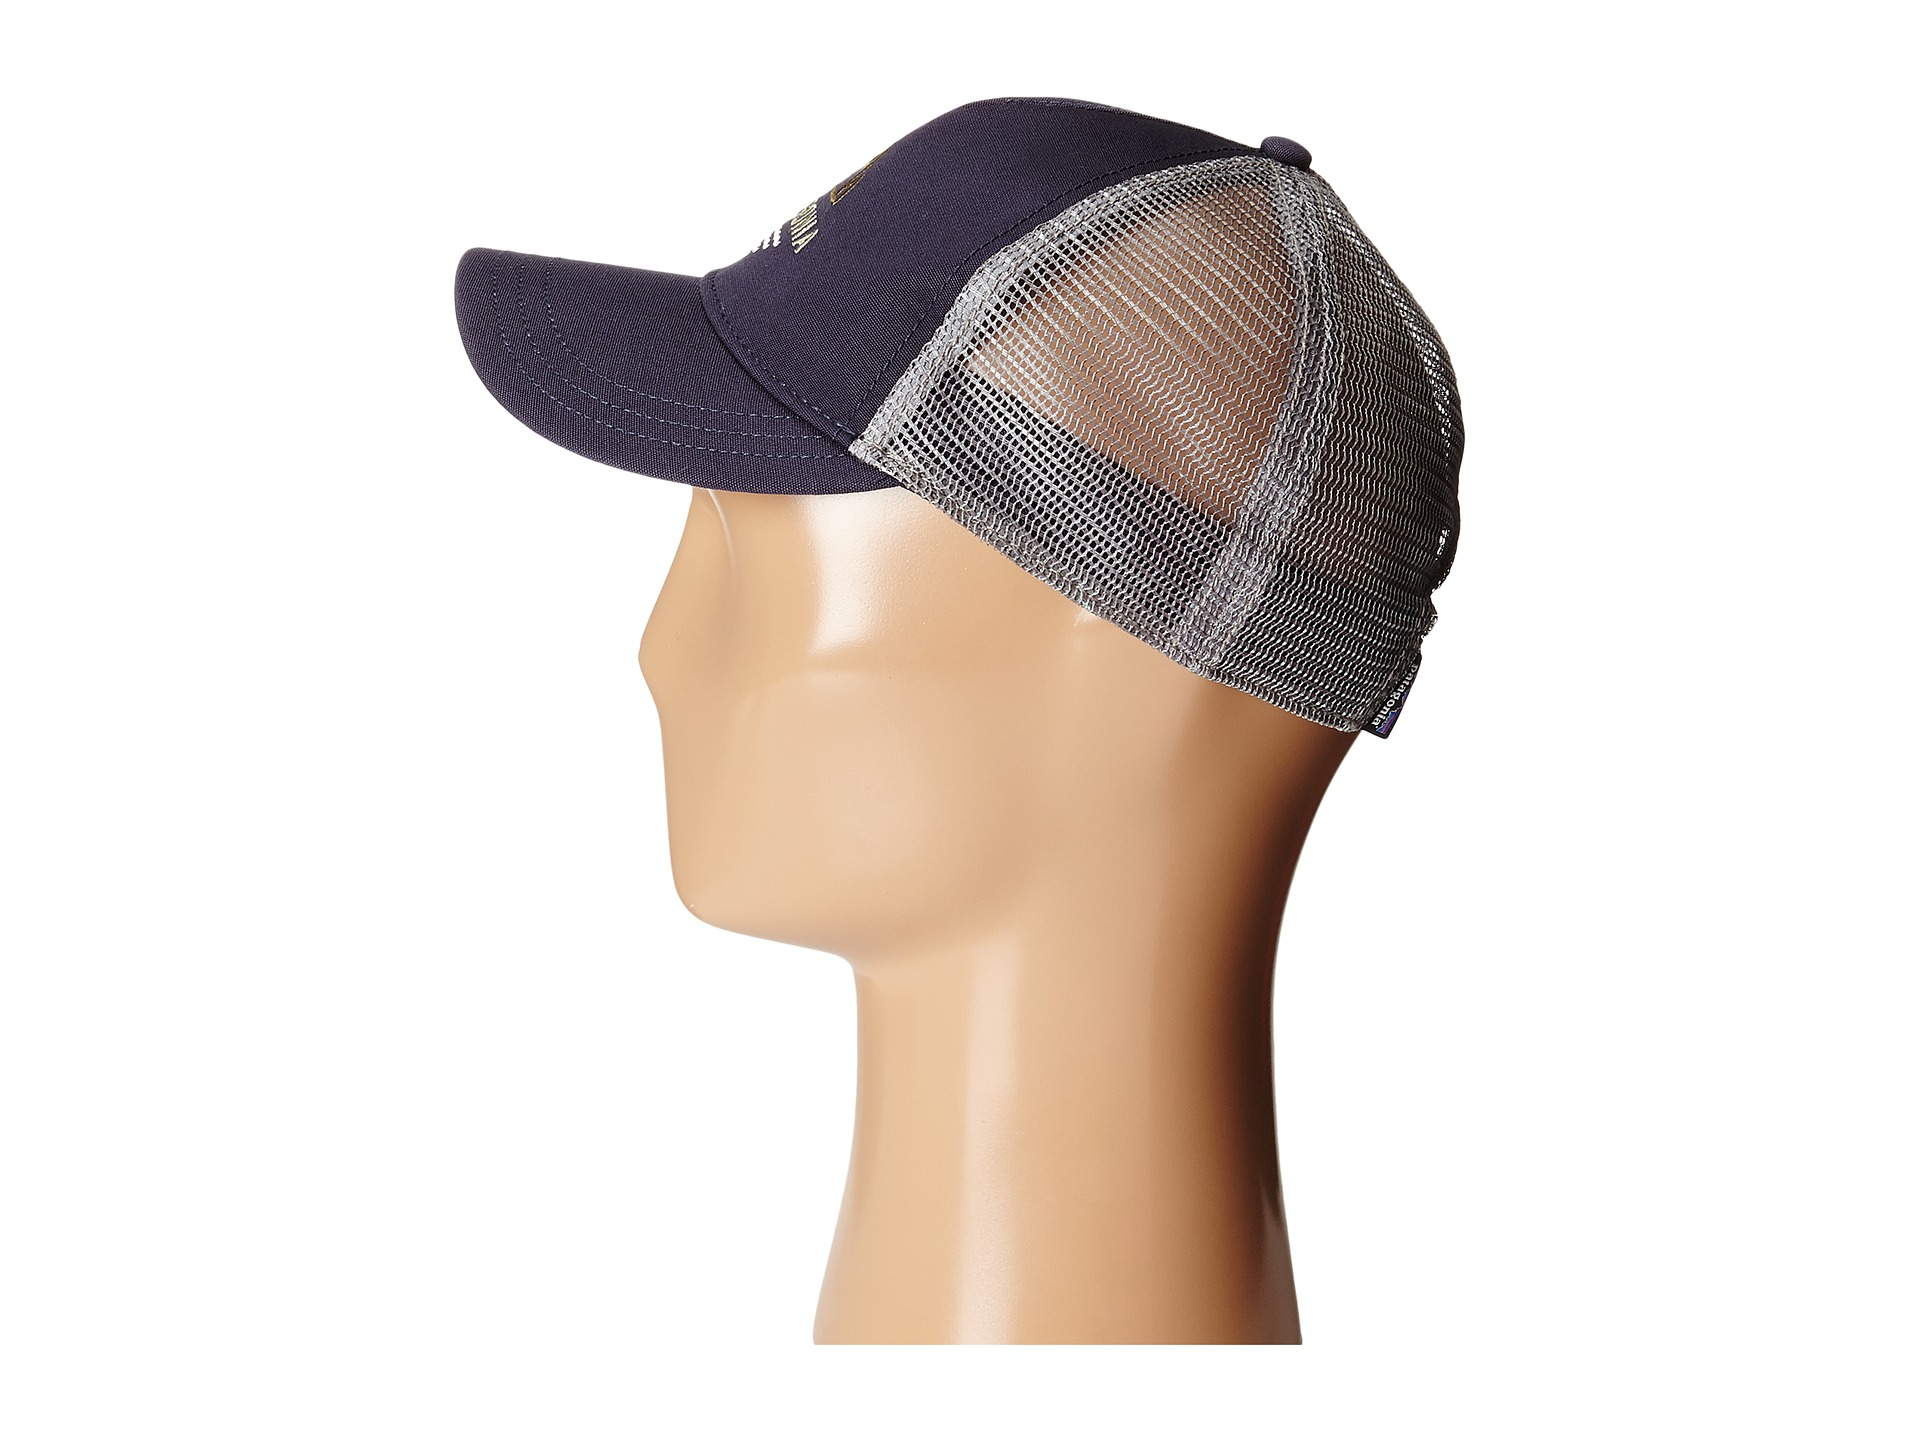 Lyst - Patagonia Peak To Paddle Layback Trucker Hat in Gray 685ea3f324a6